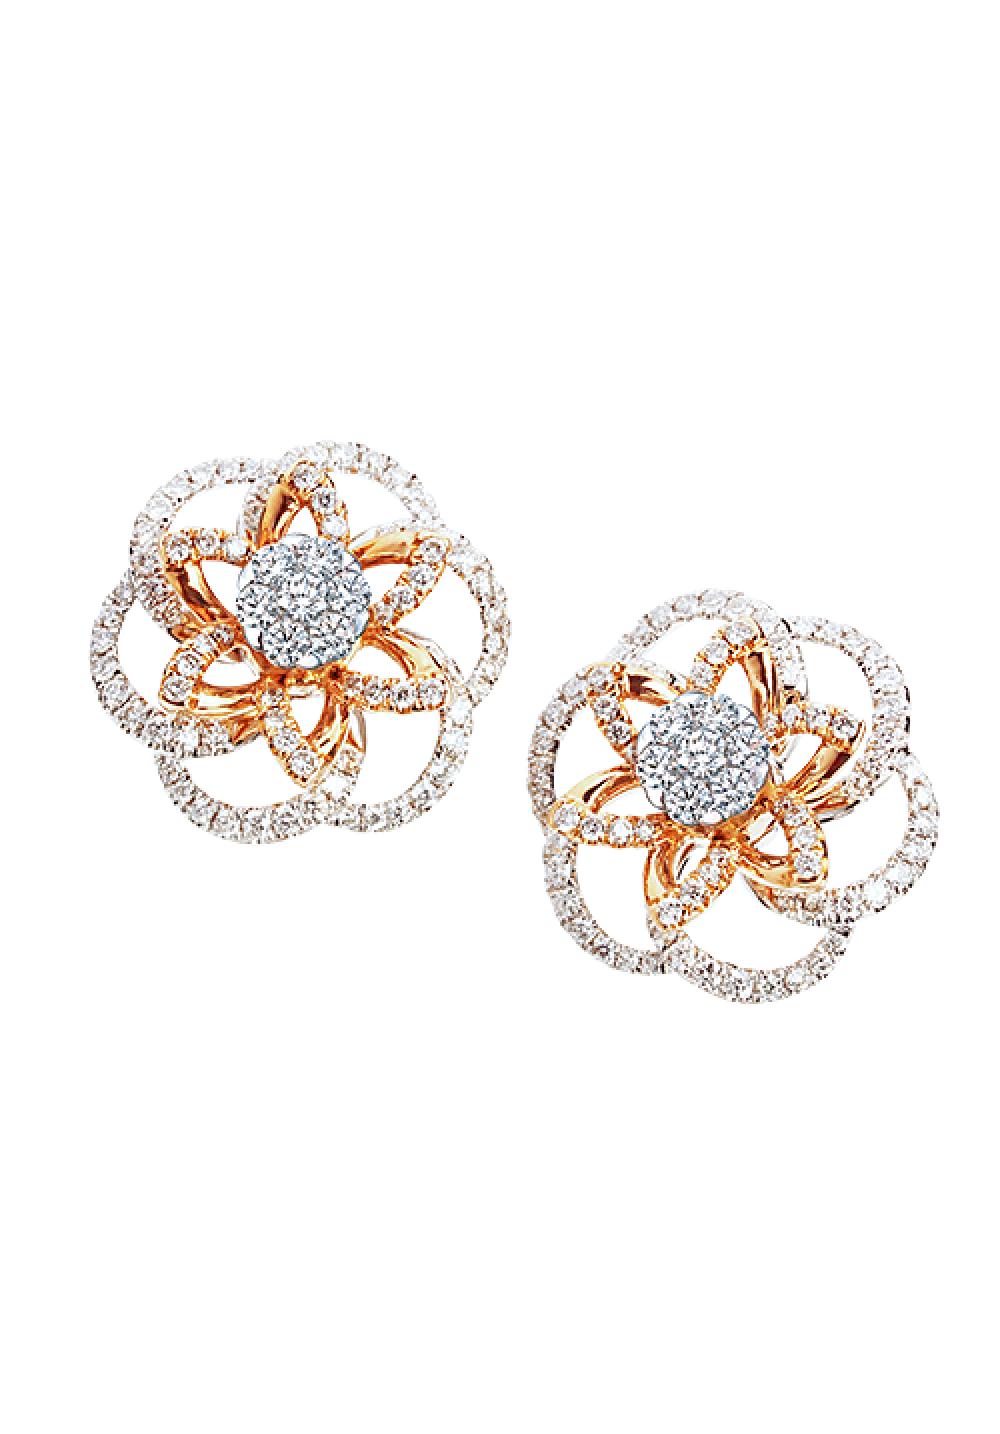 18K Rose Gold Sophisticated Spinning  Floral Coronet Diamond Earrings